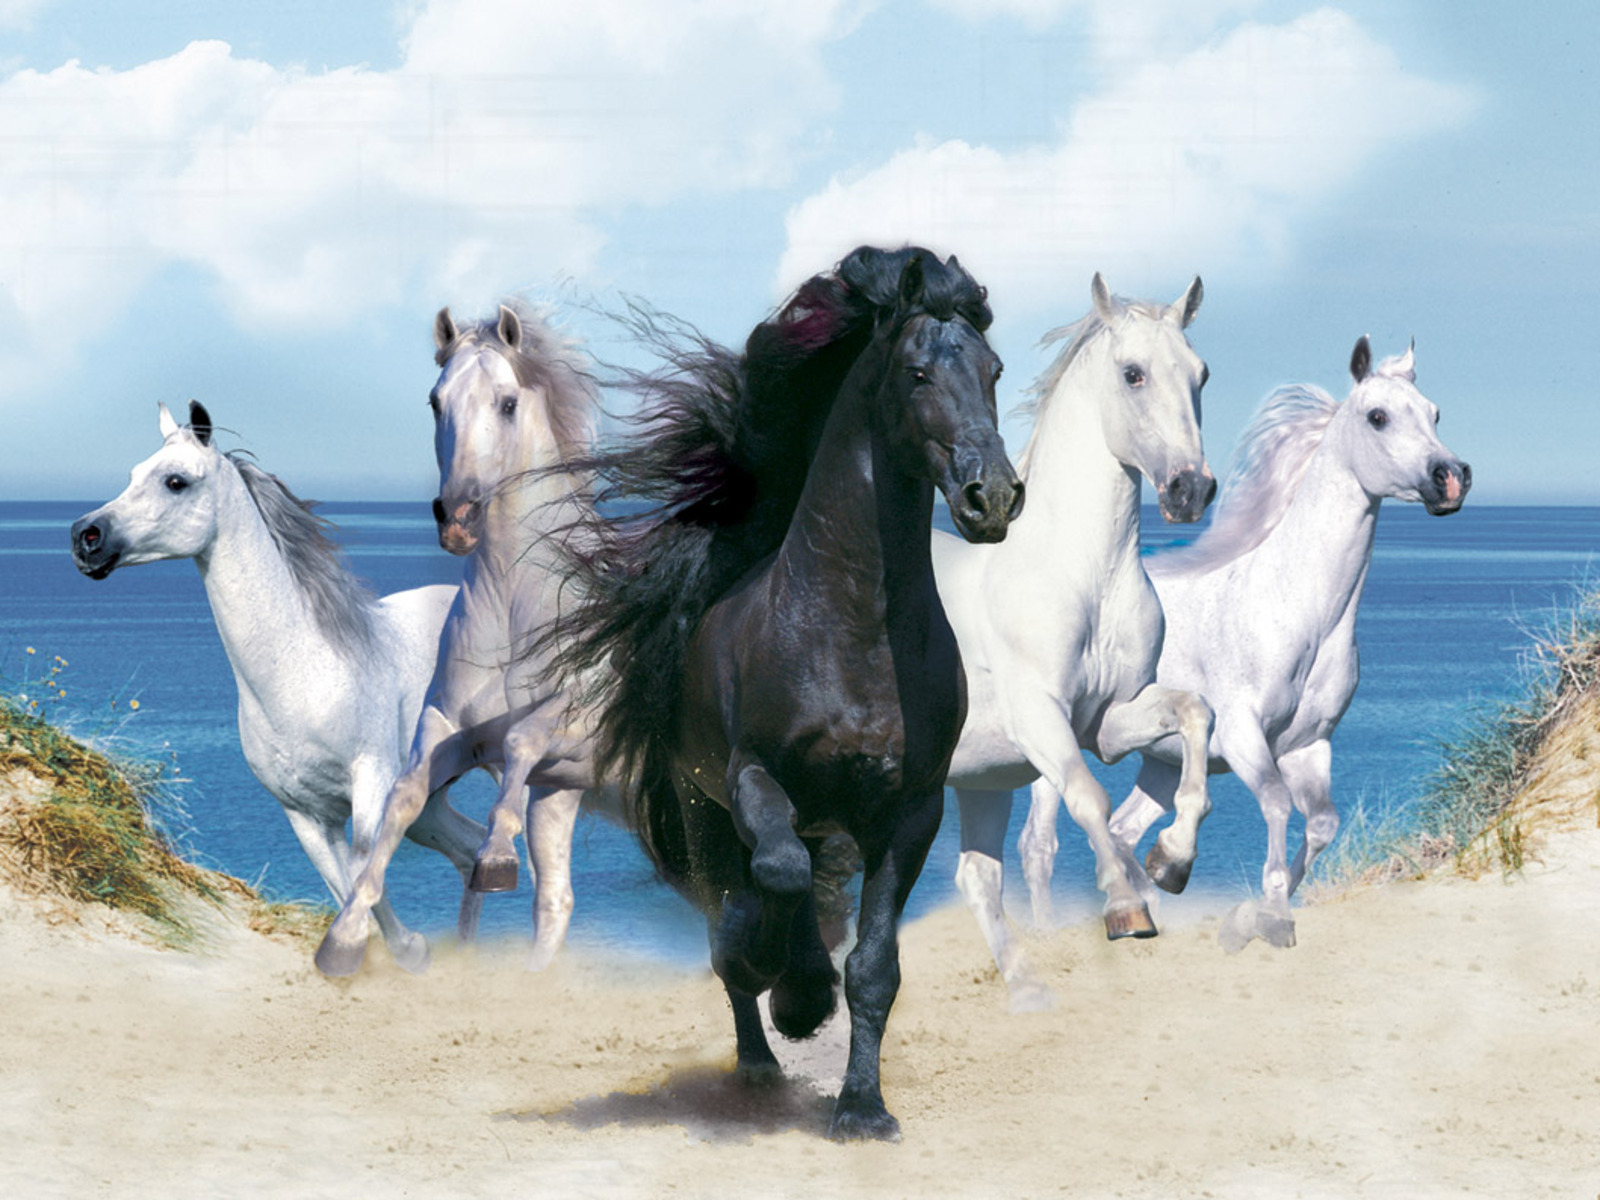 Wonderful   Wallpaper Horse Stunning - horse+wallpapers+hd+(10)  Perfect Image Reference_813319.jpg